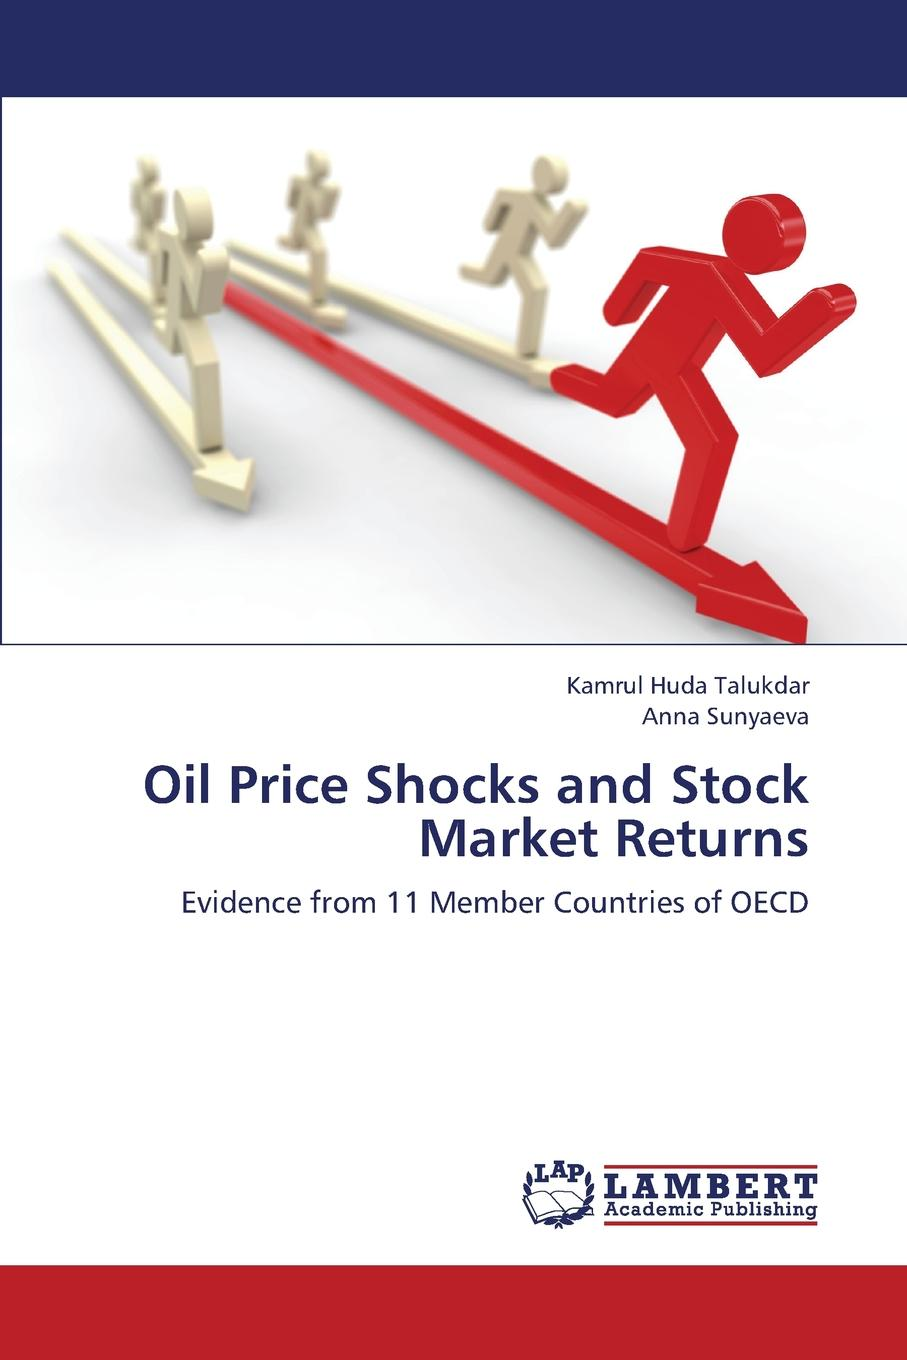 Talukdar Kamrul Huda, Sunyaeva Anna Oil Price Shocks and Stock Market Returns halil kiymaz market microstructure in emerging and developed markets price discovery information flows and transaction costs